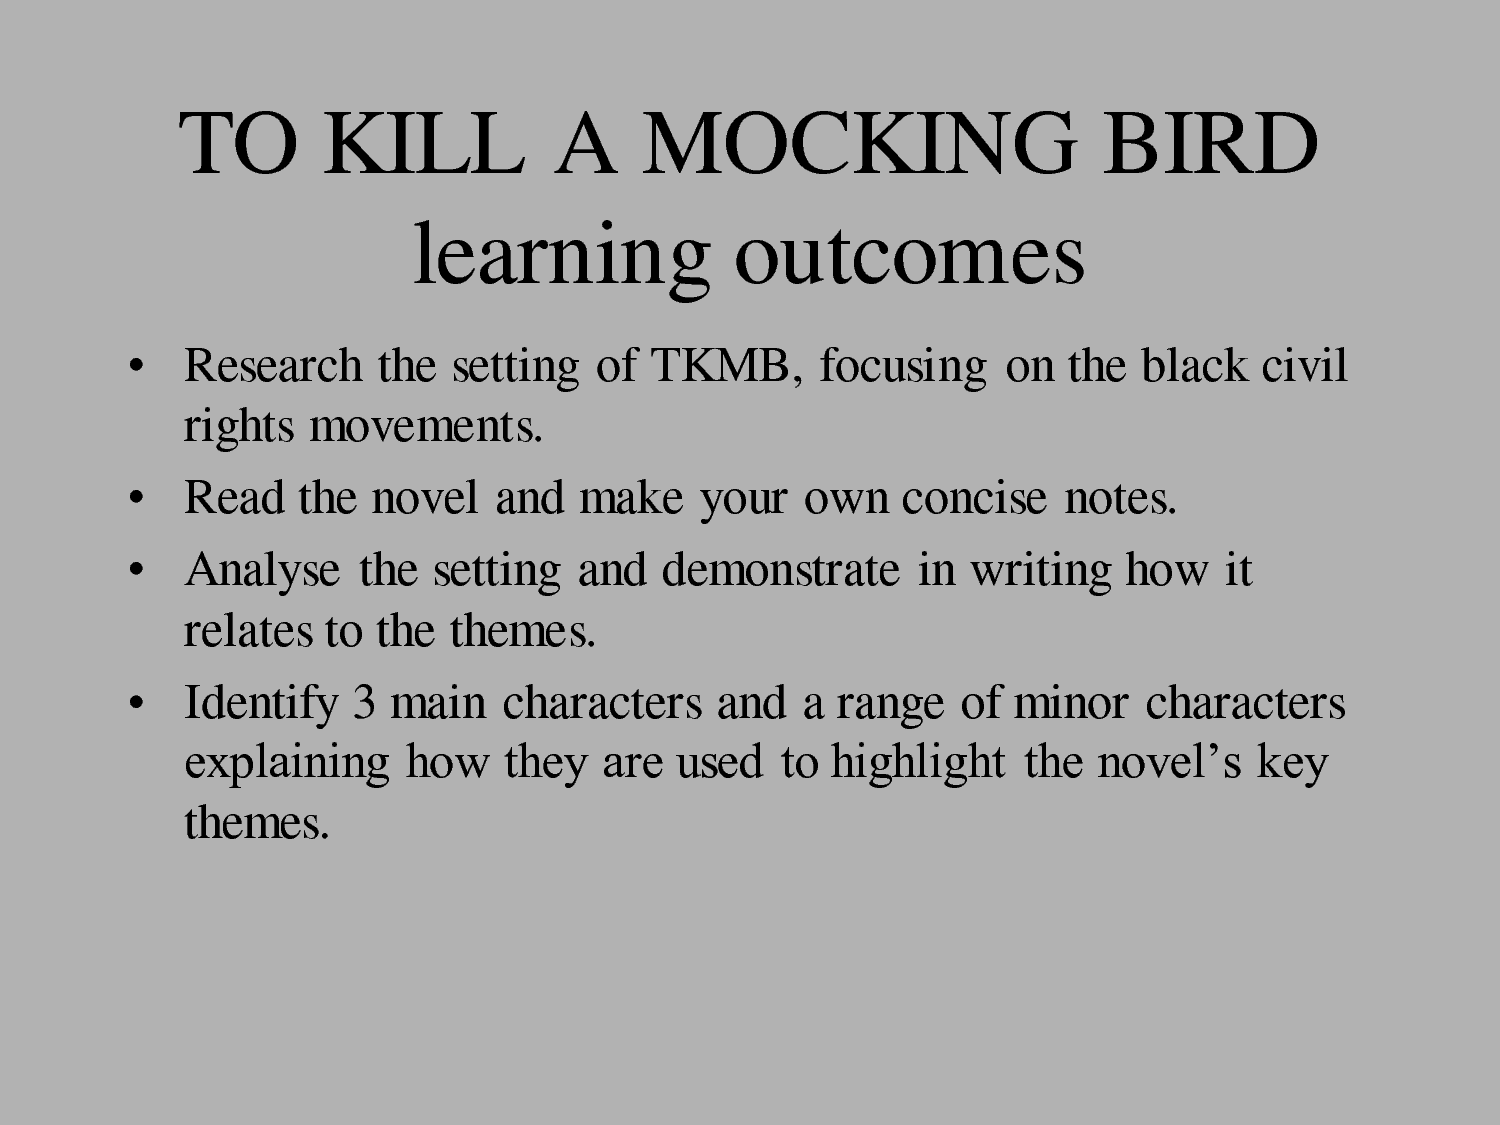 to kill a mockingbird jem and scout relationship quotes